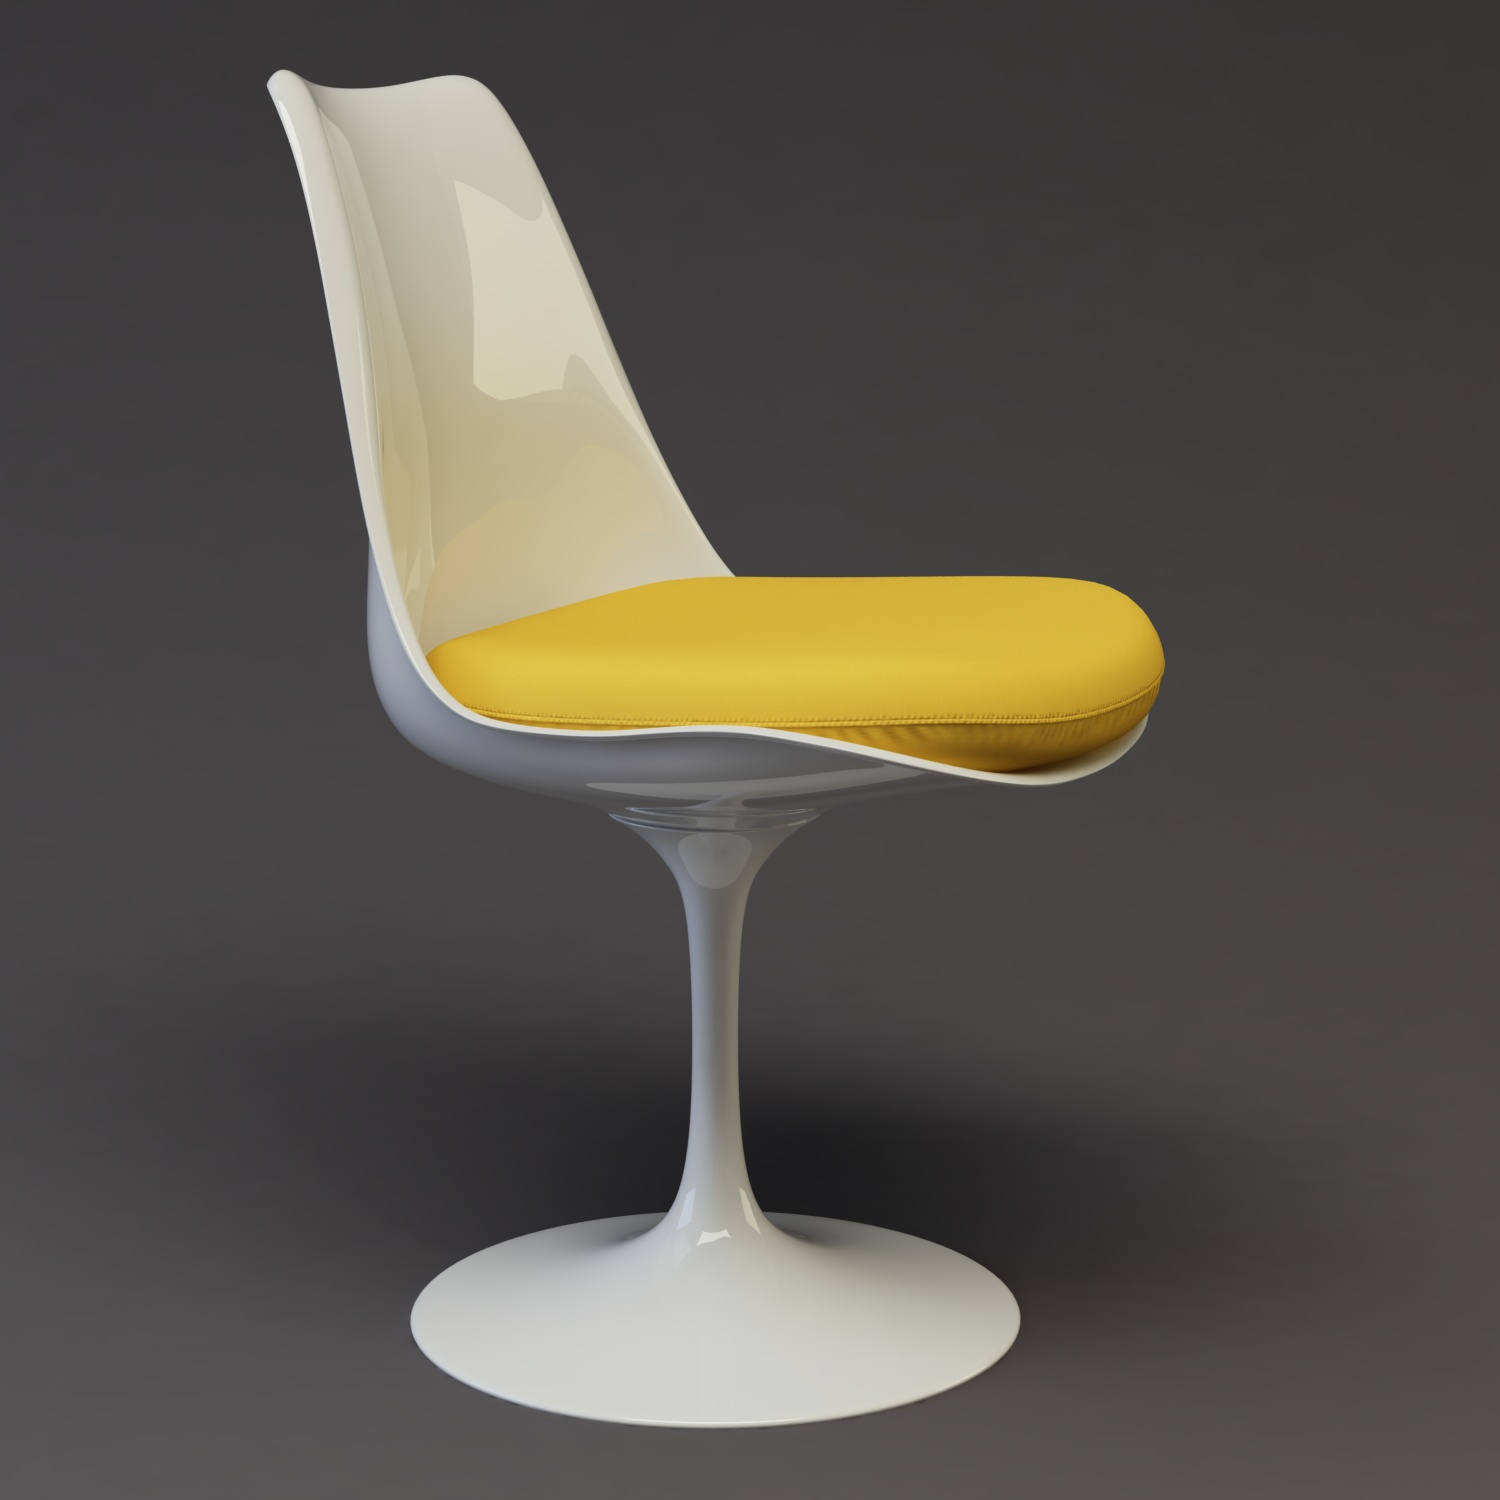 shop knoll by stuhl chairs chair frei tulip saarinen our categories in furniture